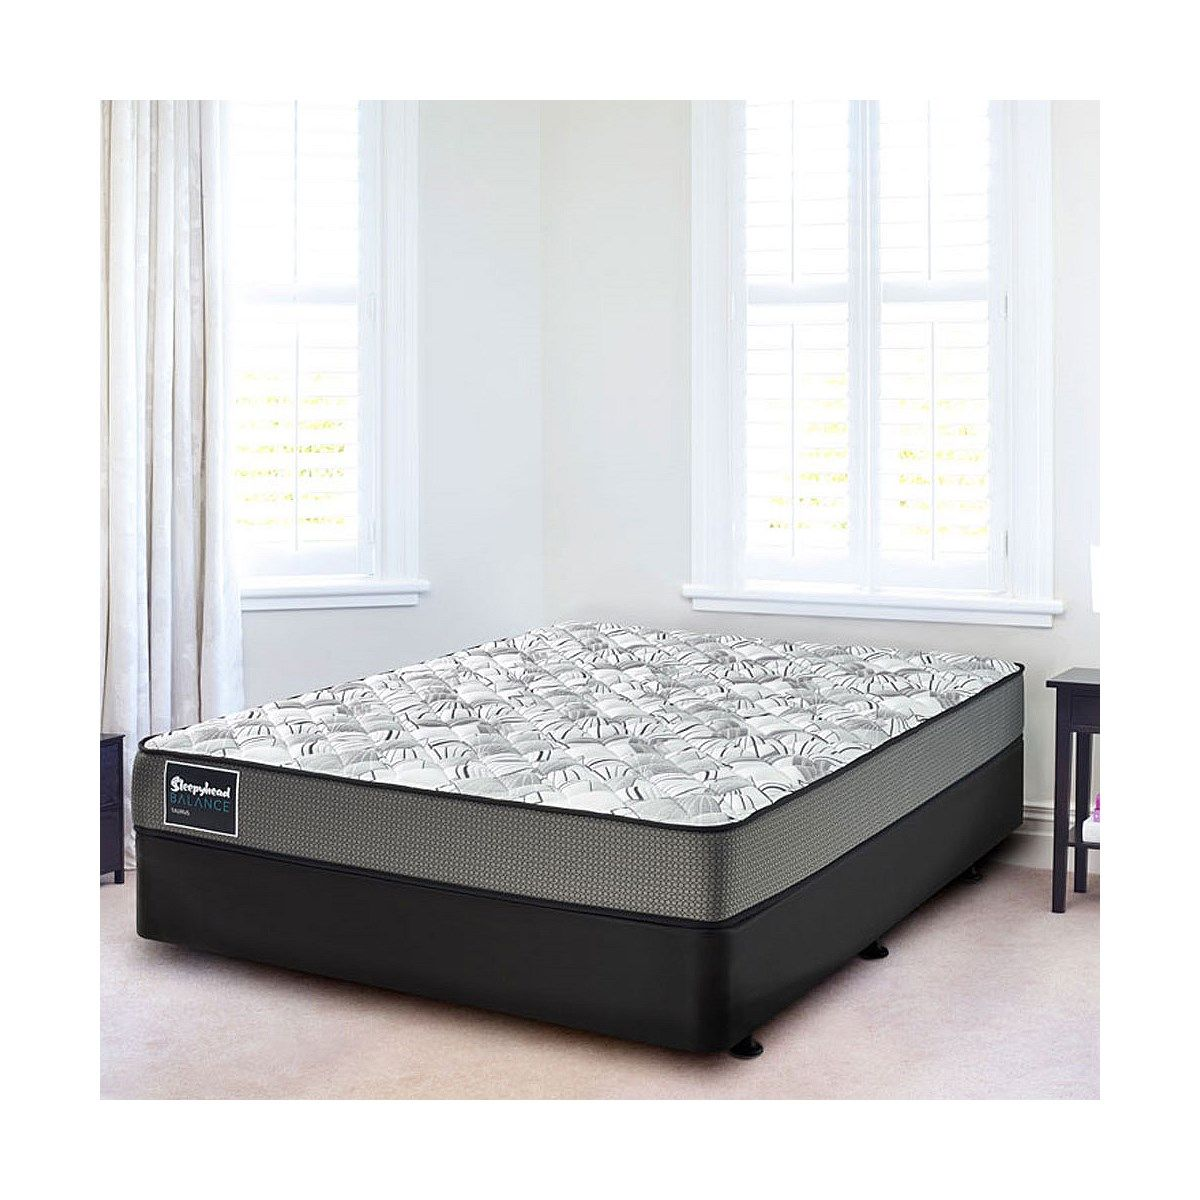 Current Hot Deals From Smiths City Balance Taurus King Bed King